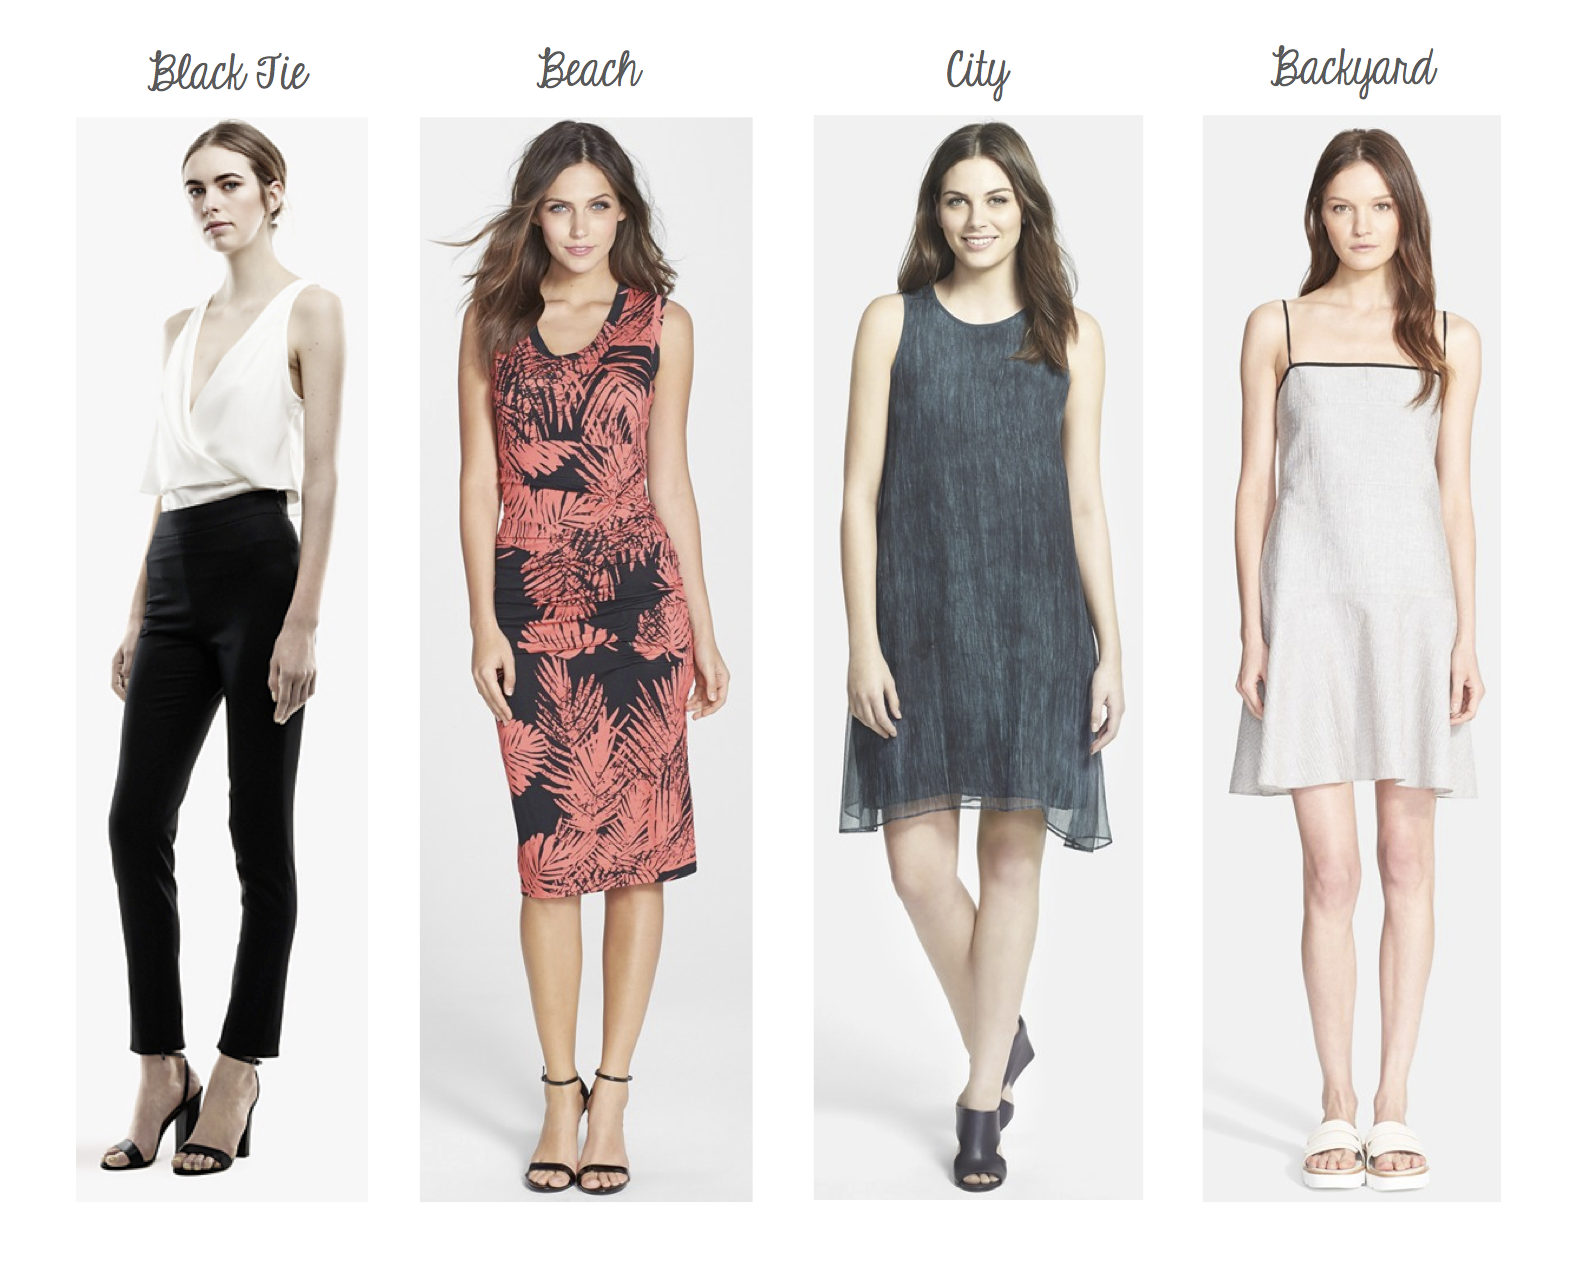 Theory Alizay Top and Testra Pant, Nicole Miller Dakota Dress, Eileen Fisher Crinkle Chiffon Dress, Rag & Bone Dune Dress